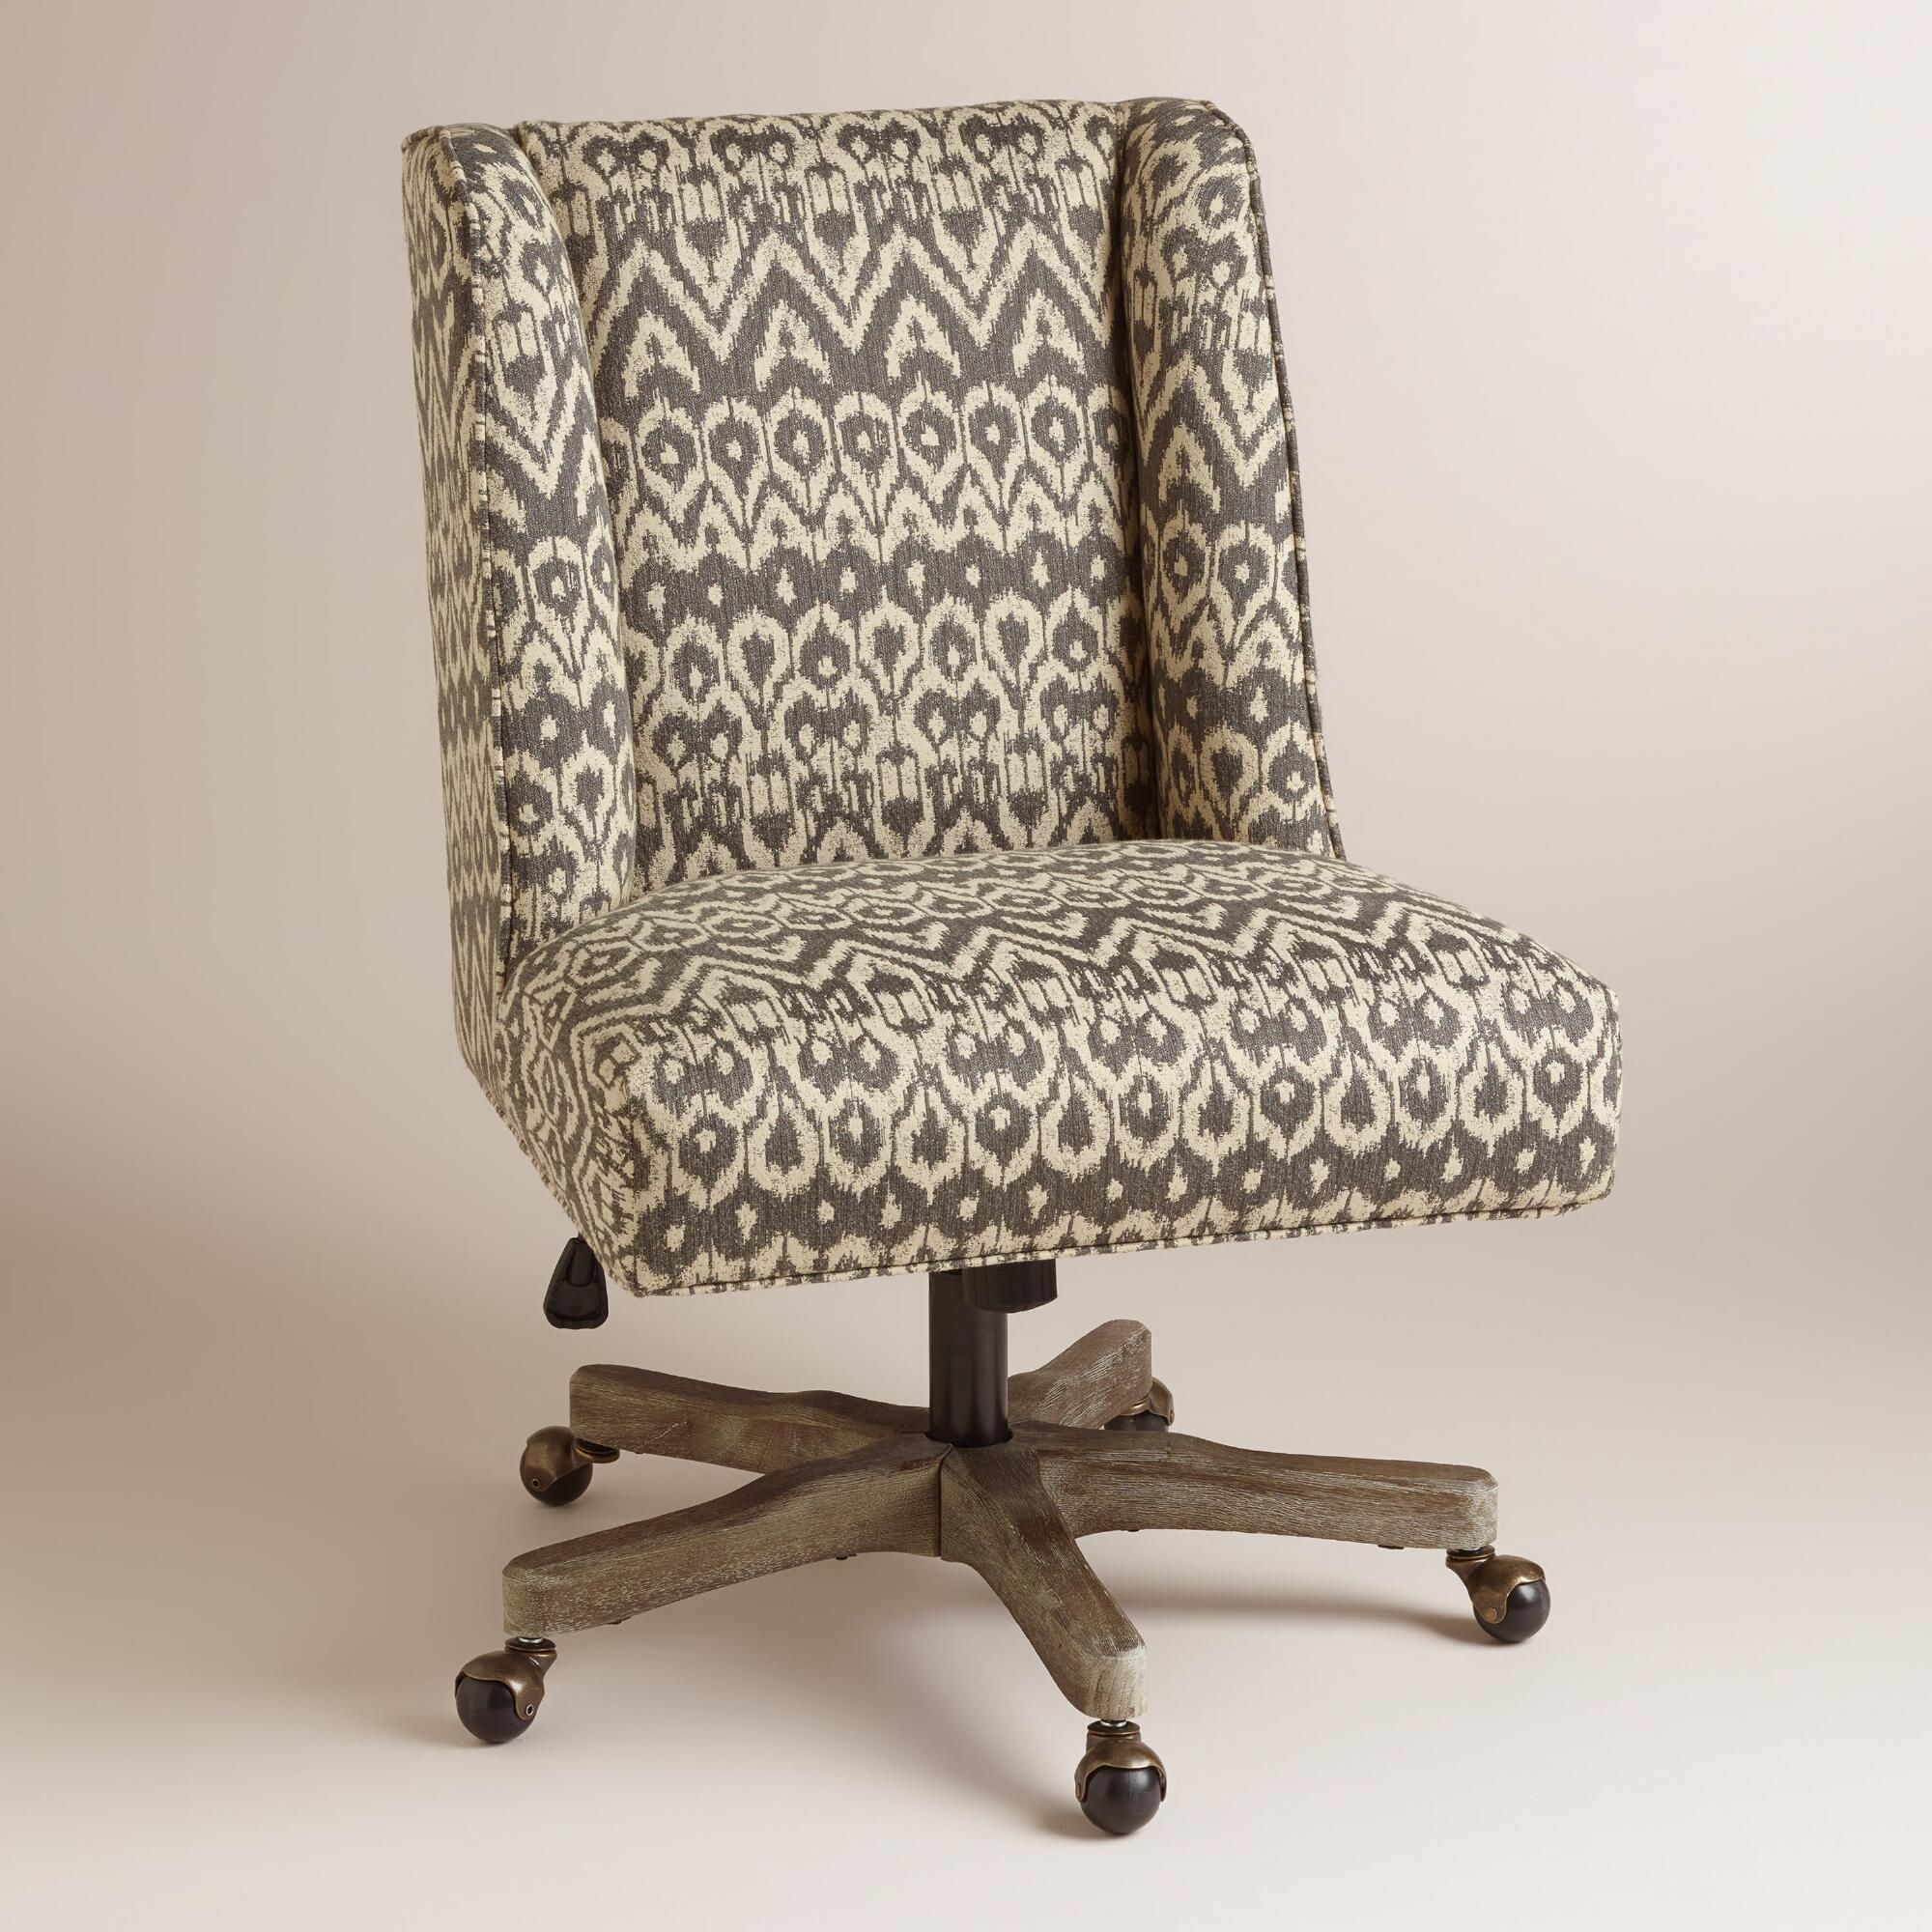 Revolving Chair Features Nichols Stone Rocking Value With An Updated Wingback Profile And Charcoal Gray Ikat